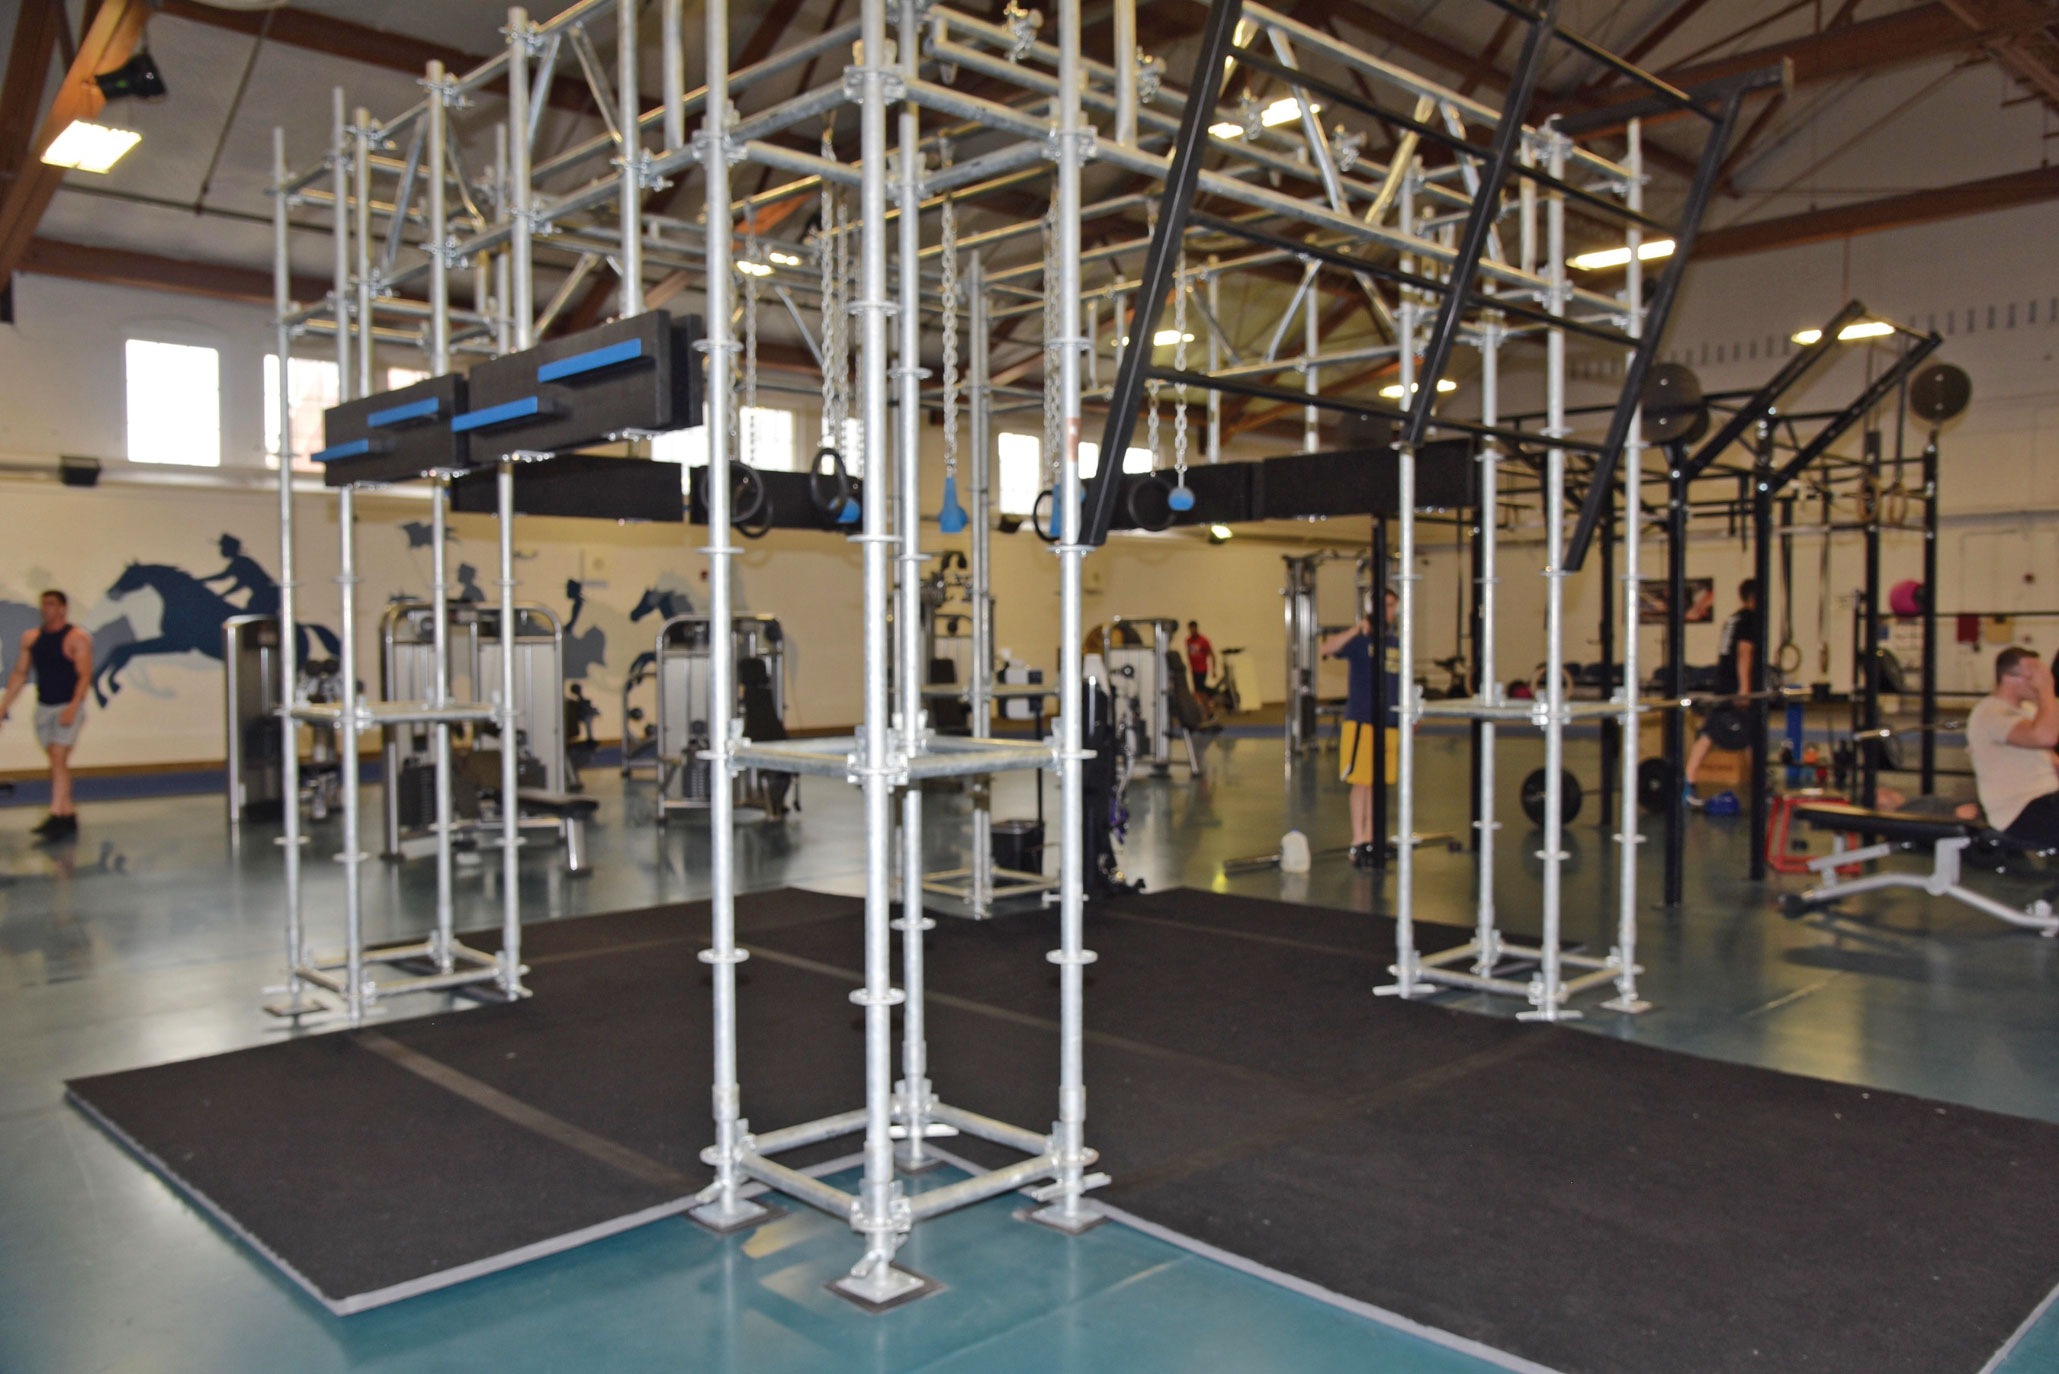 U.S. Air Force photo/2nd Lt. Nikita Thorpe An Air Force Alpha Warrior Battle Rig is stationed in the center of Independence Hall Fitness Center at F.E. Warren Air Force Base, Wyoming, July 8, 2017. The Alpha Warrior Program is an Air Force-wide fitness initiative to incorporate a functional fitness approach in every Airman's mindset and a way to tackle the four pillars of Comprehensive Airmen Fitness.